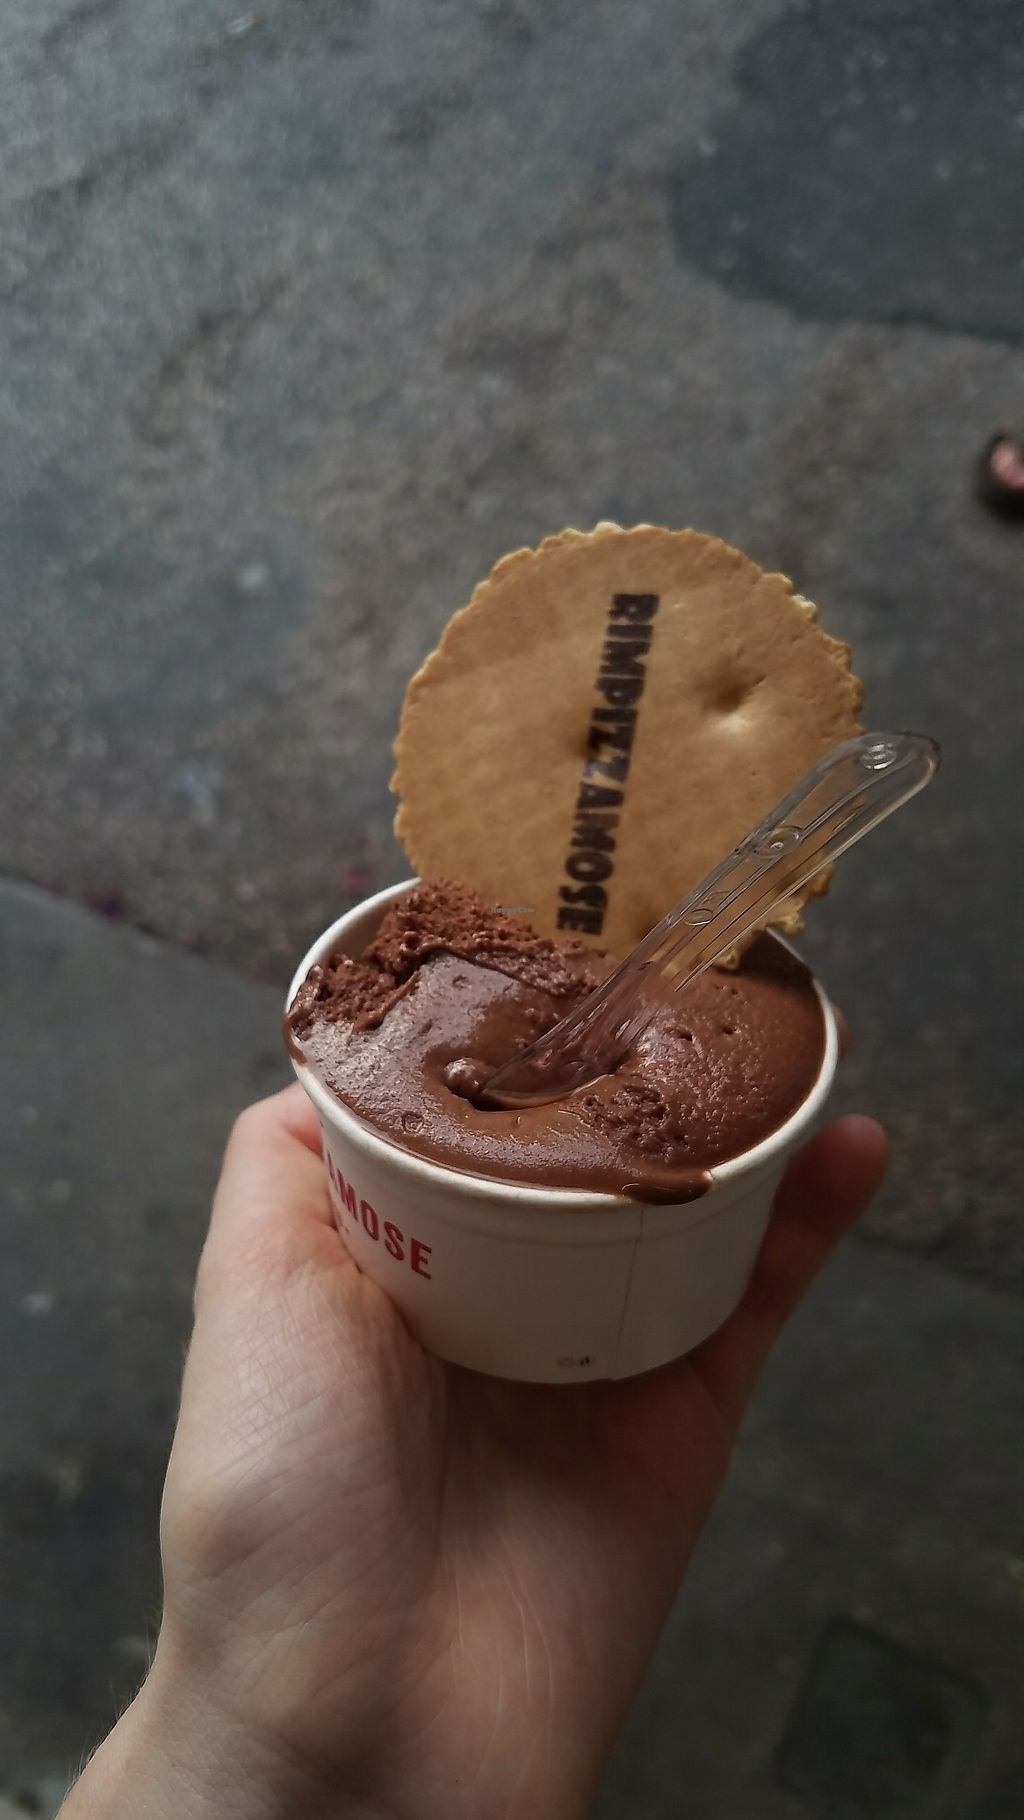 """Photo of Rimpizzamose II Gelato  by <a href=""""/members/profile/rachelgirl8"""">rachelgirl8</a> <br/>chocolate sorbetto <br/> July 9, 2017  - <a href='/contact/abuse/image/95791/278379'>Report</a>"""